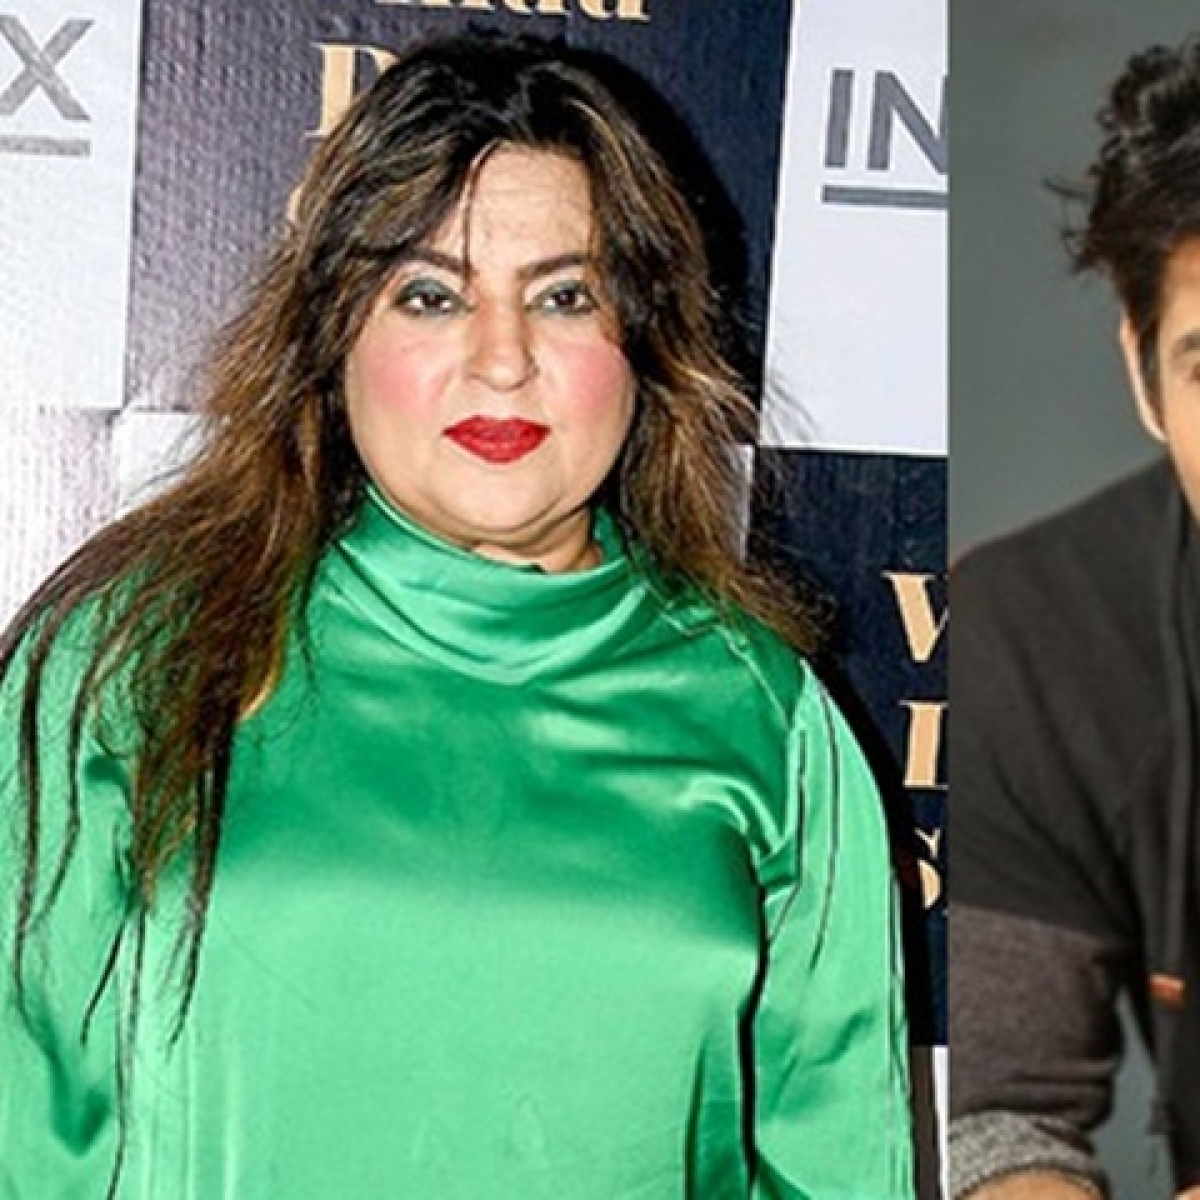 Bigg Boss: Dolly Bindra comes out in support of Siddharth Shukla after ugly fight with Asim Riaz